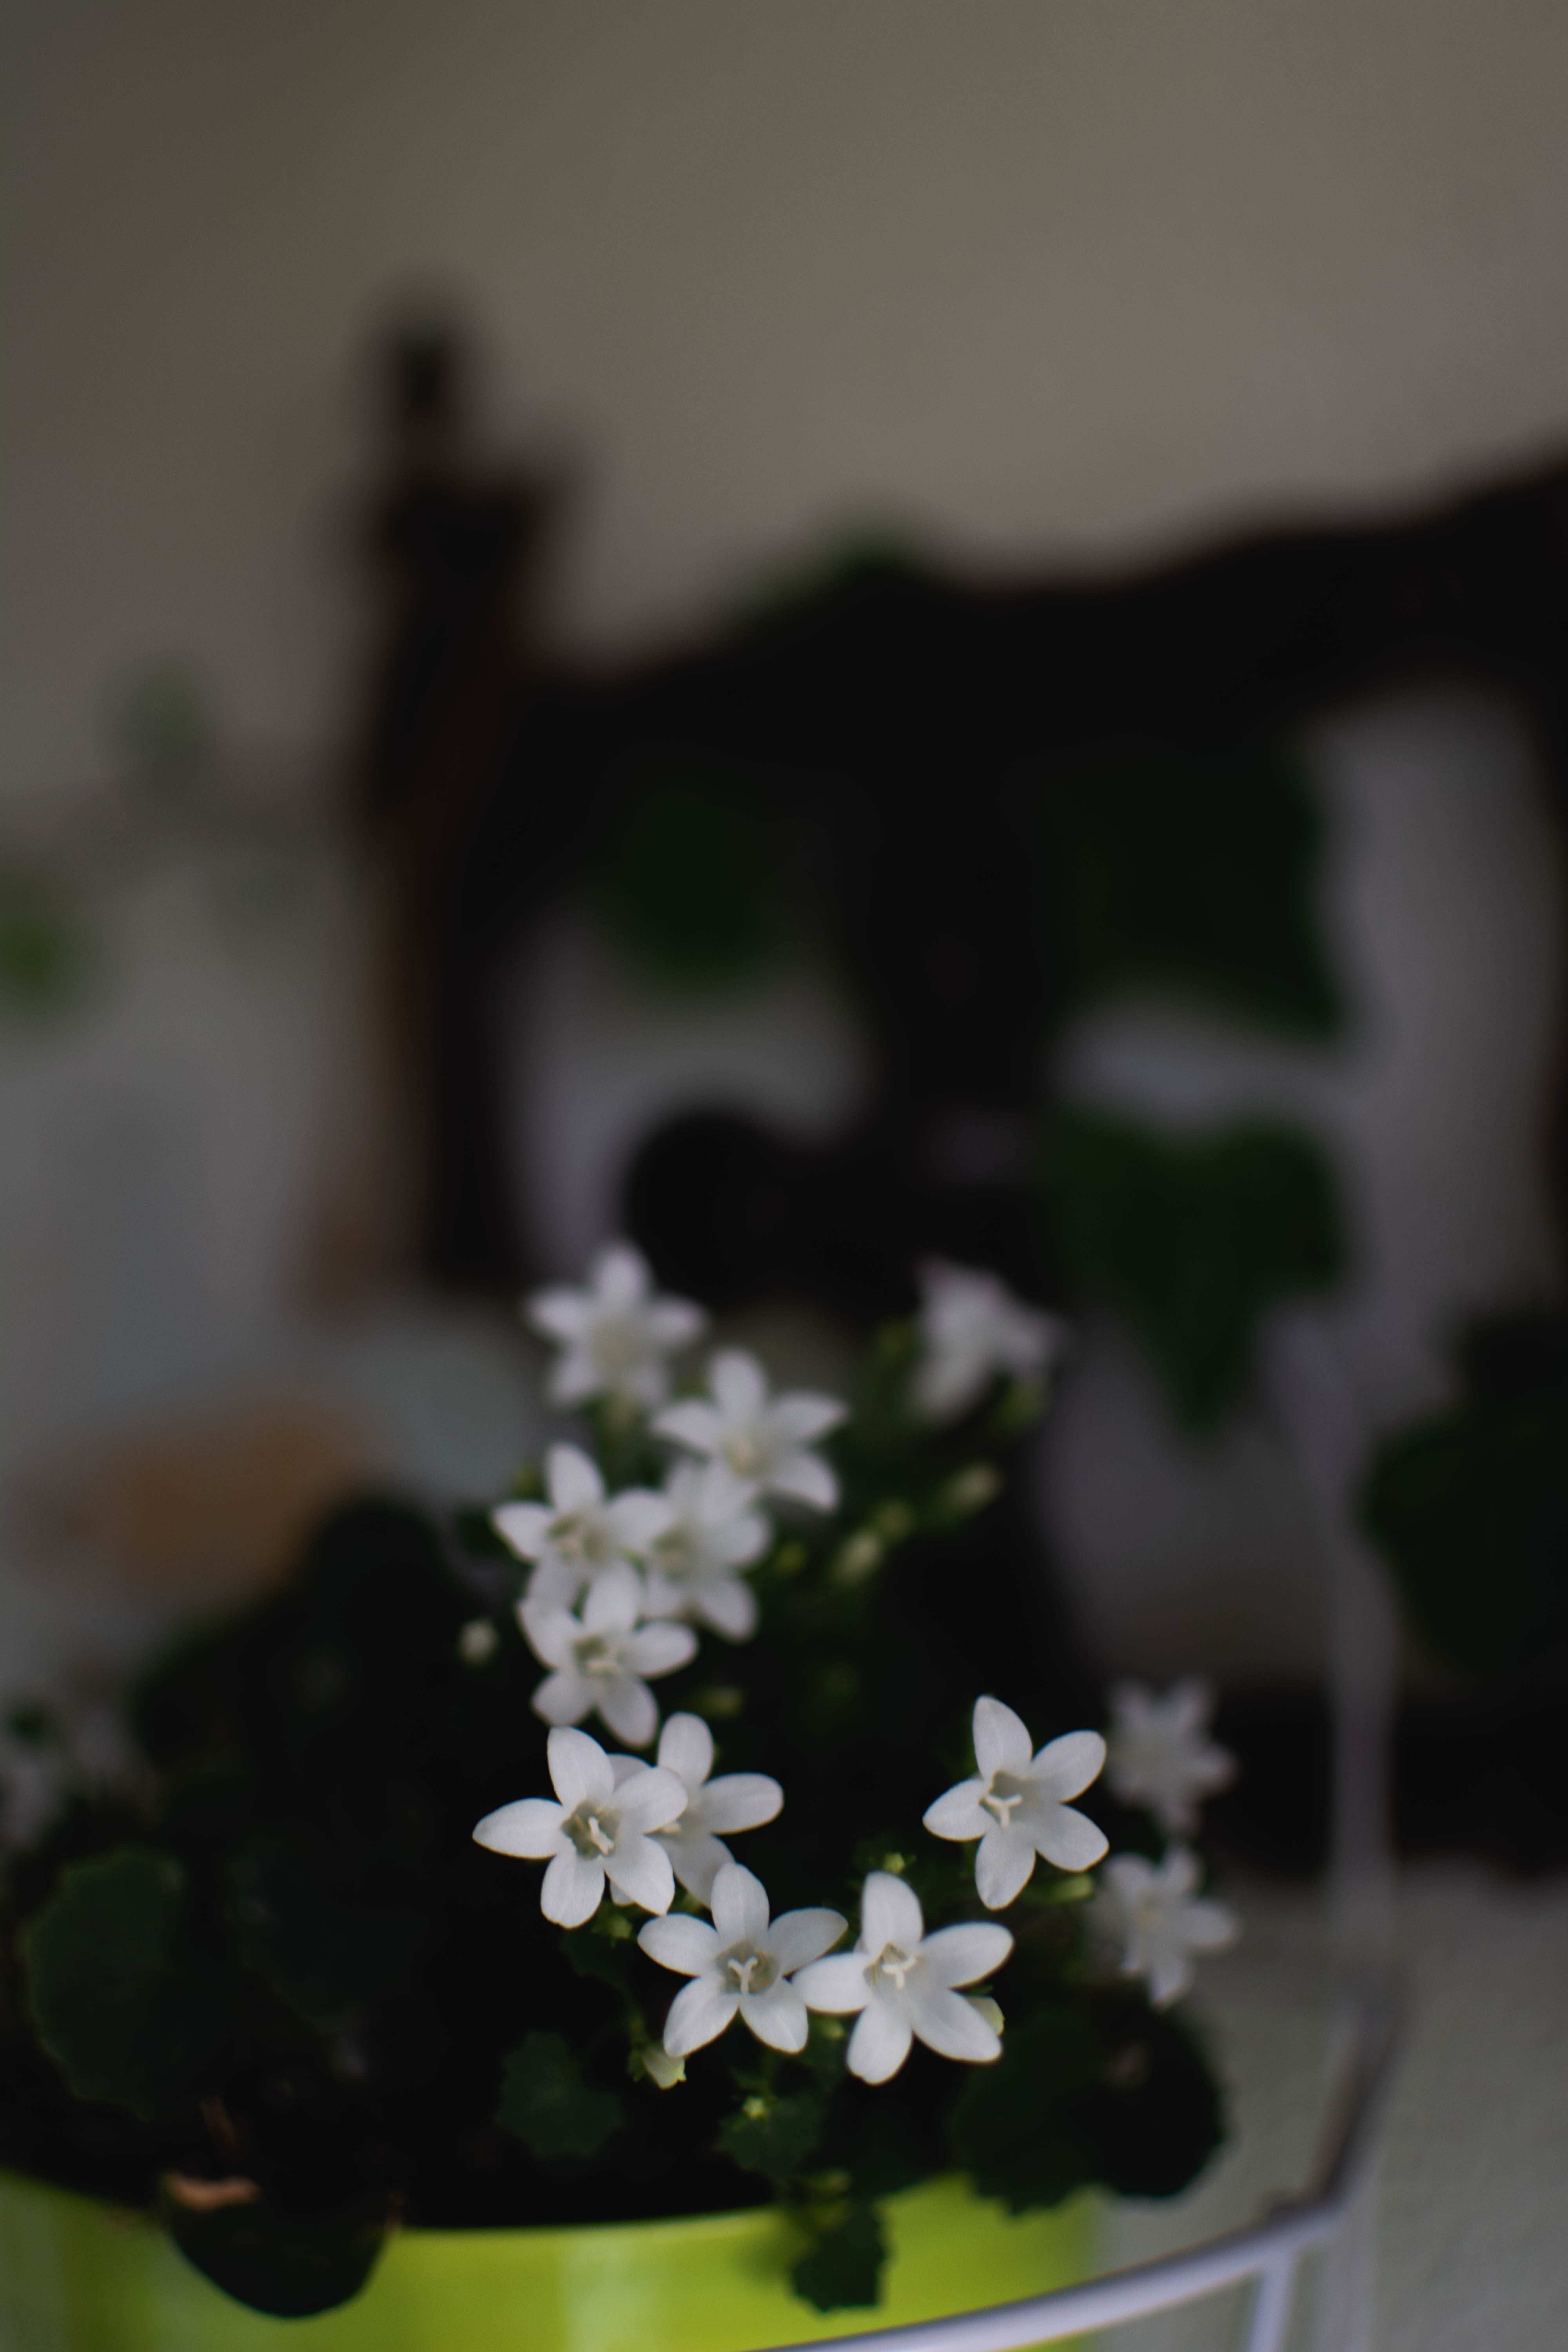 of balkony, flowers, nature, white